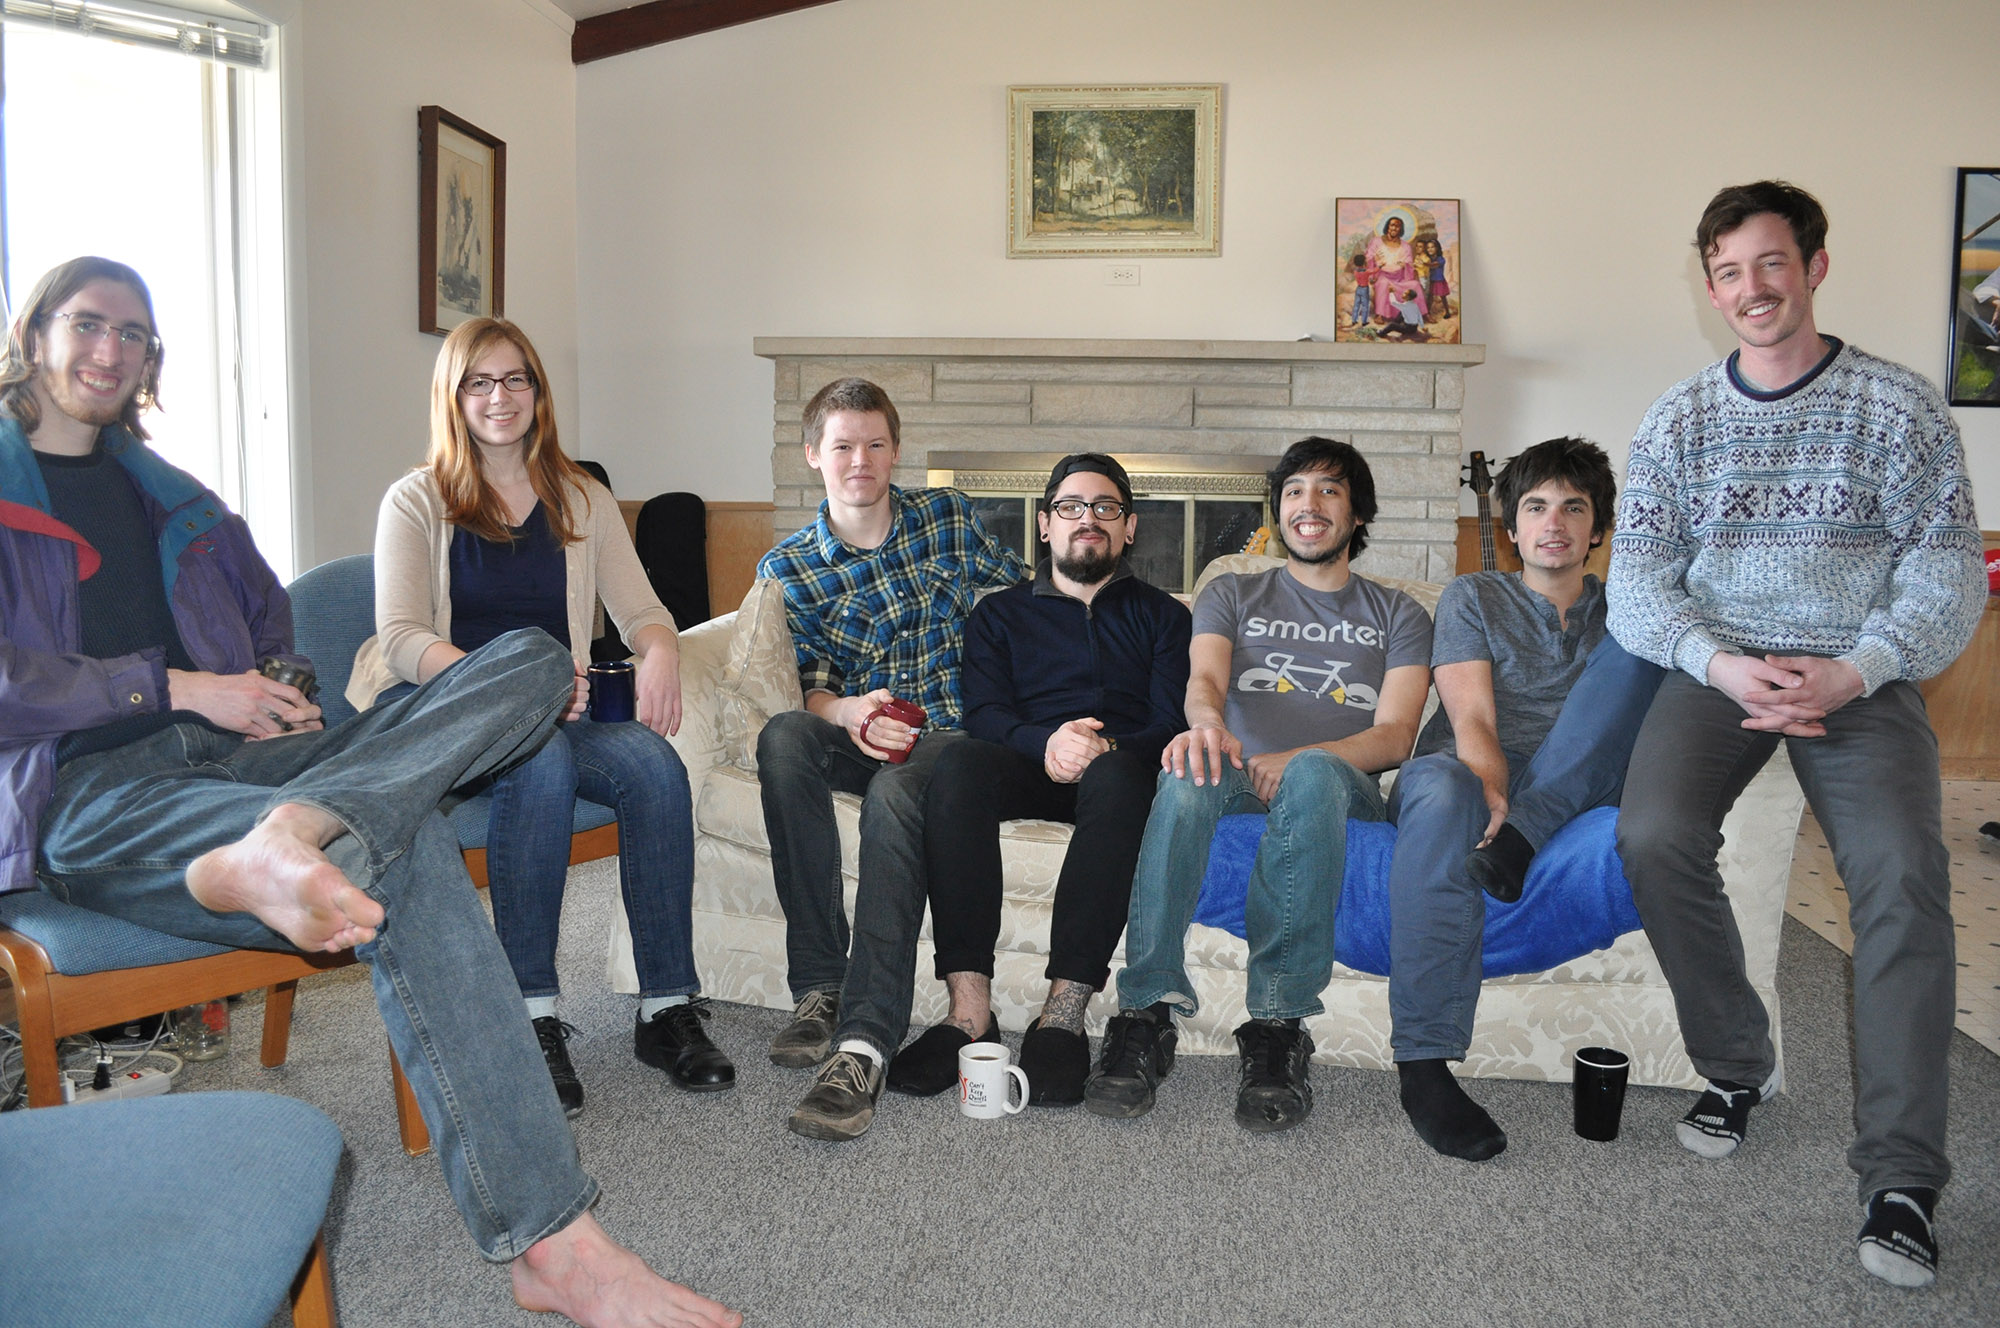 7 members of the Goshen Skeptics sit around a small room and smile for the camera